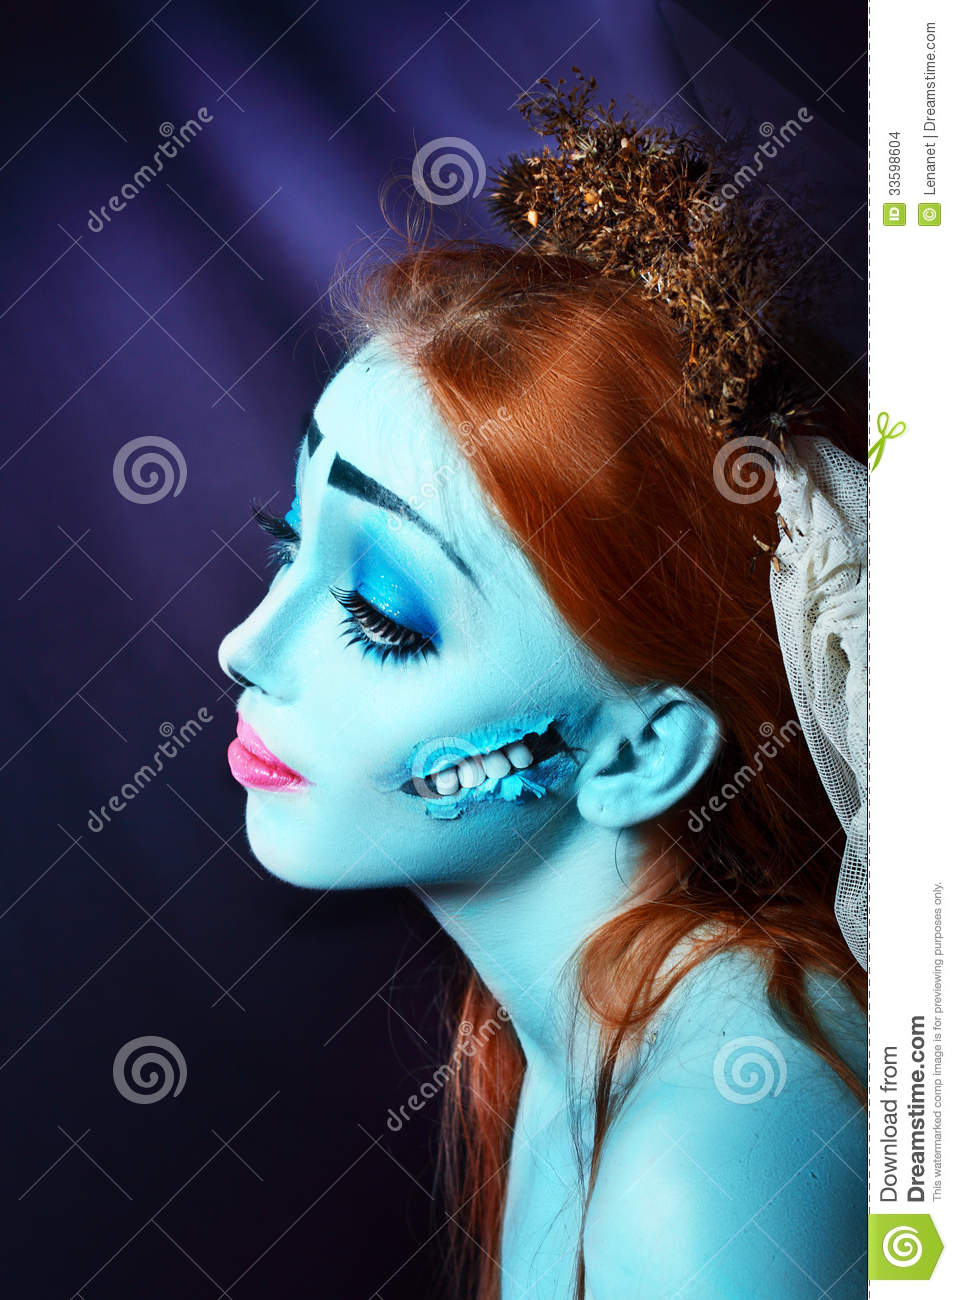 corpse bride stock photo image of beautiful evil model